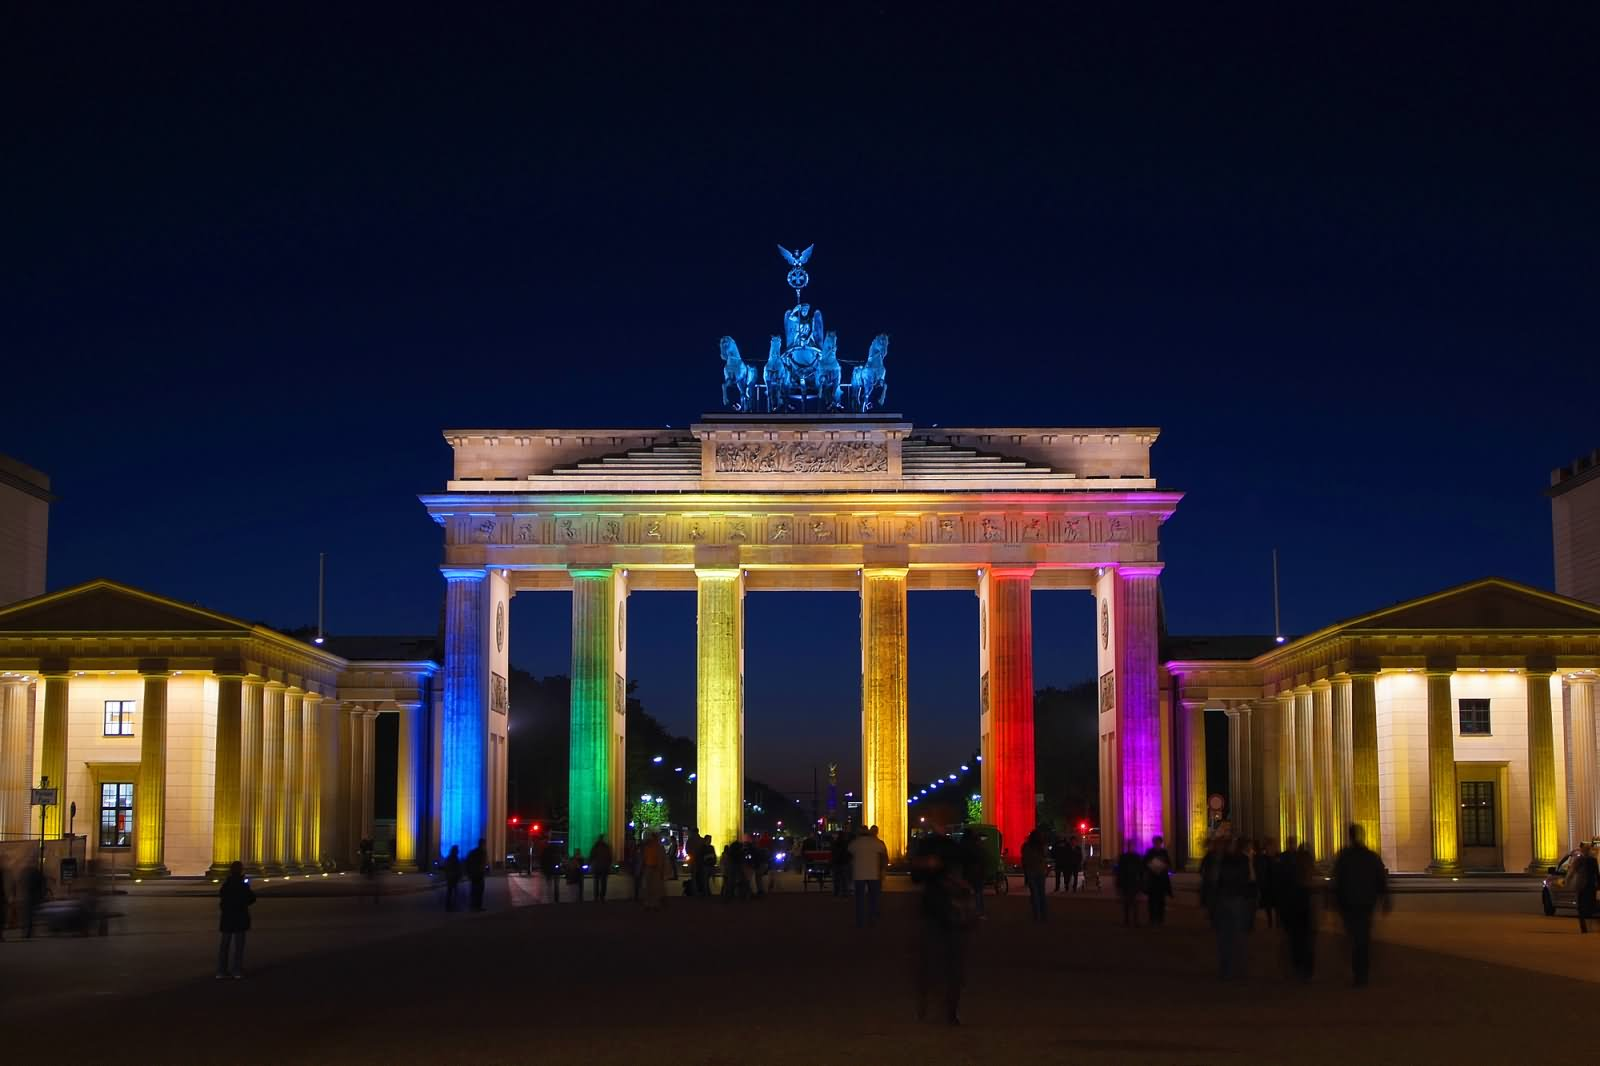 brandenburg gate at night - photo #7